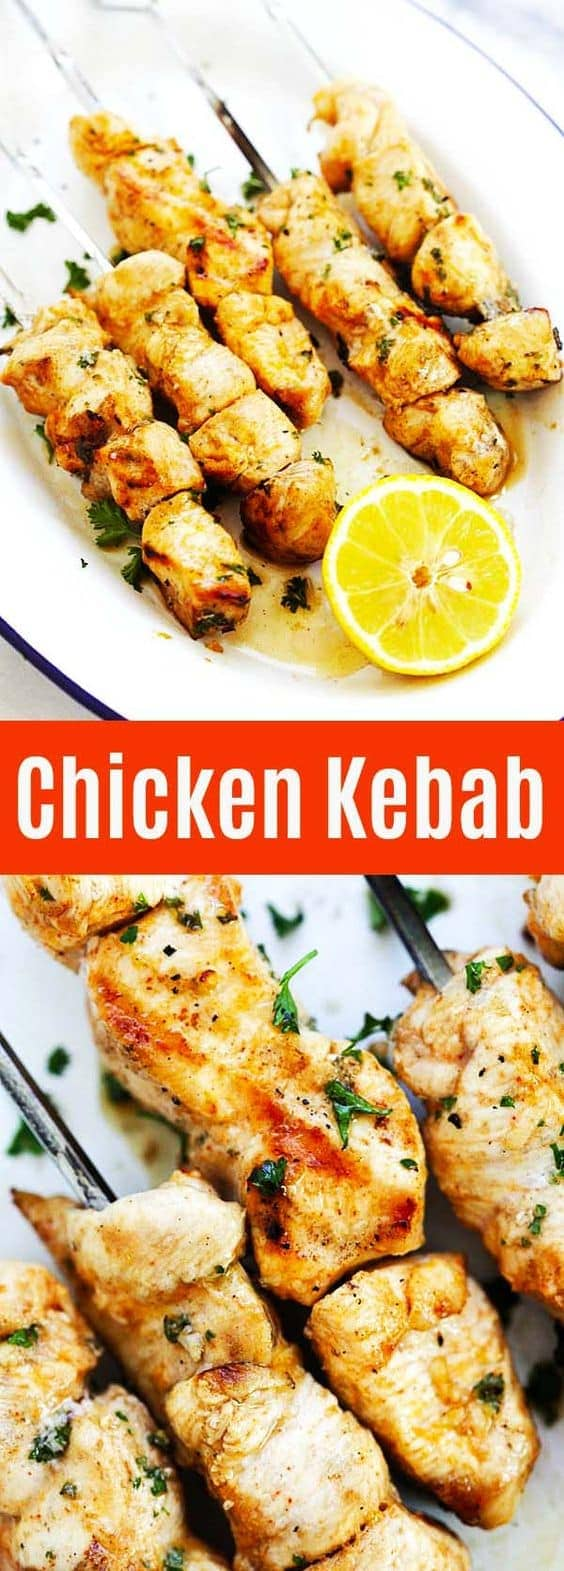 Chicken Kebab - easy recipe with the juiciest and best kebab ever! Threaded on skewers and marinated with olive oil, lemon juice, paprika, garlic and cumin | rasamalaysia.com